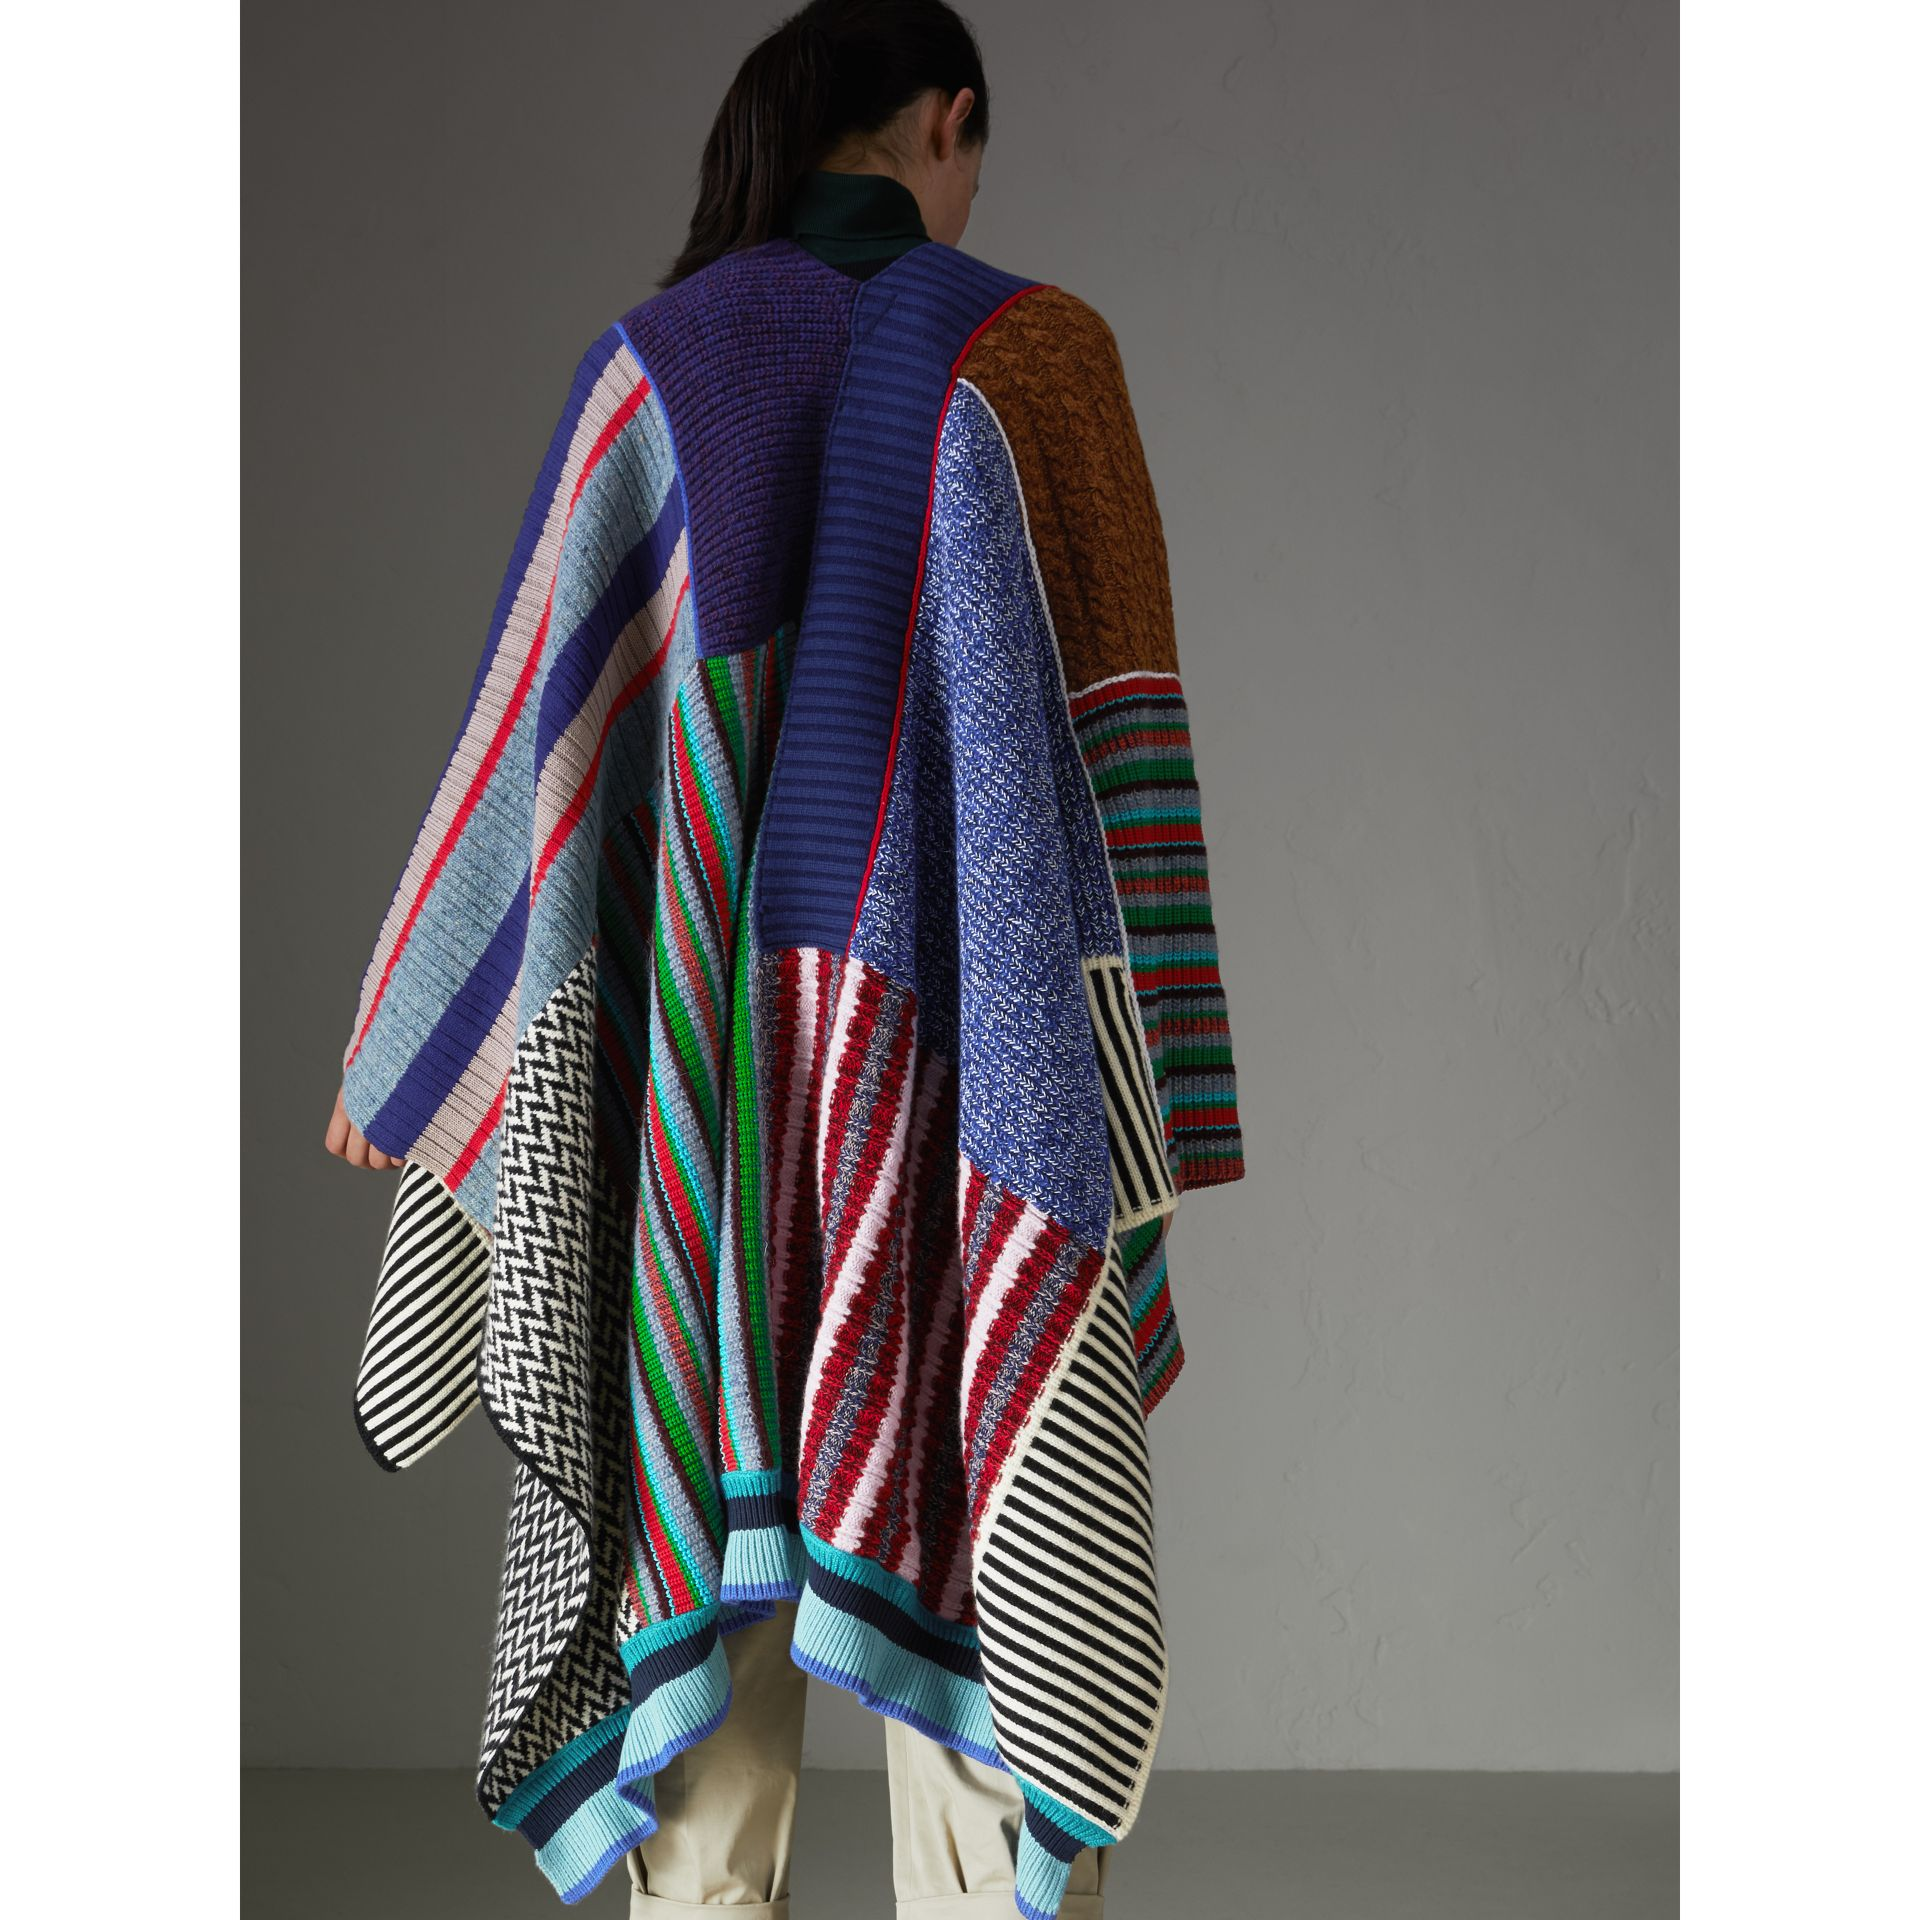 Wool Cashmere Blend Patchwork Poncho in Multicolour - Women | Burberry - gallery image 2